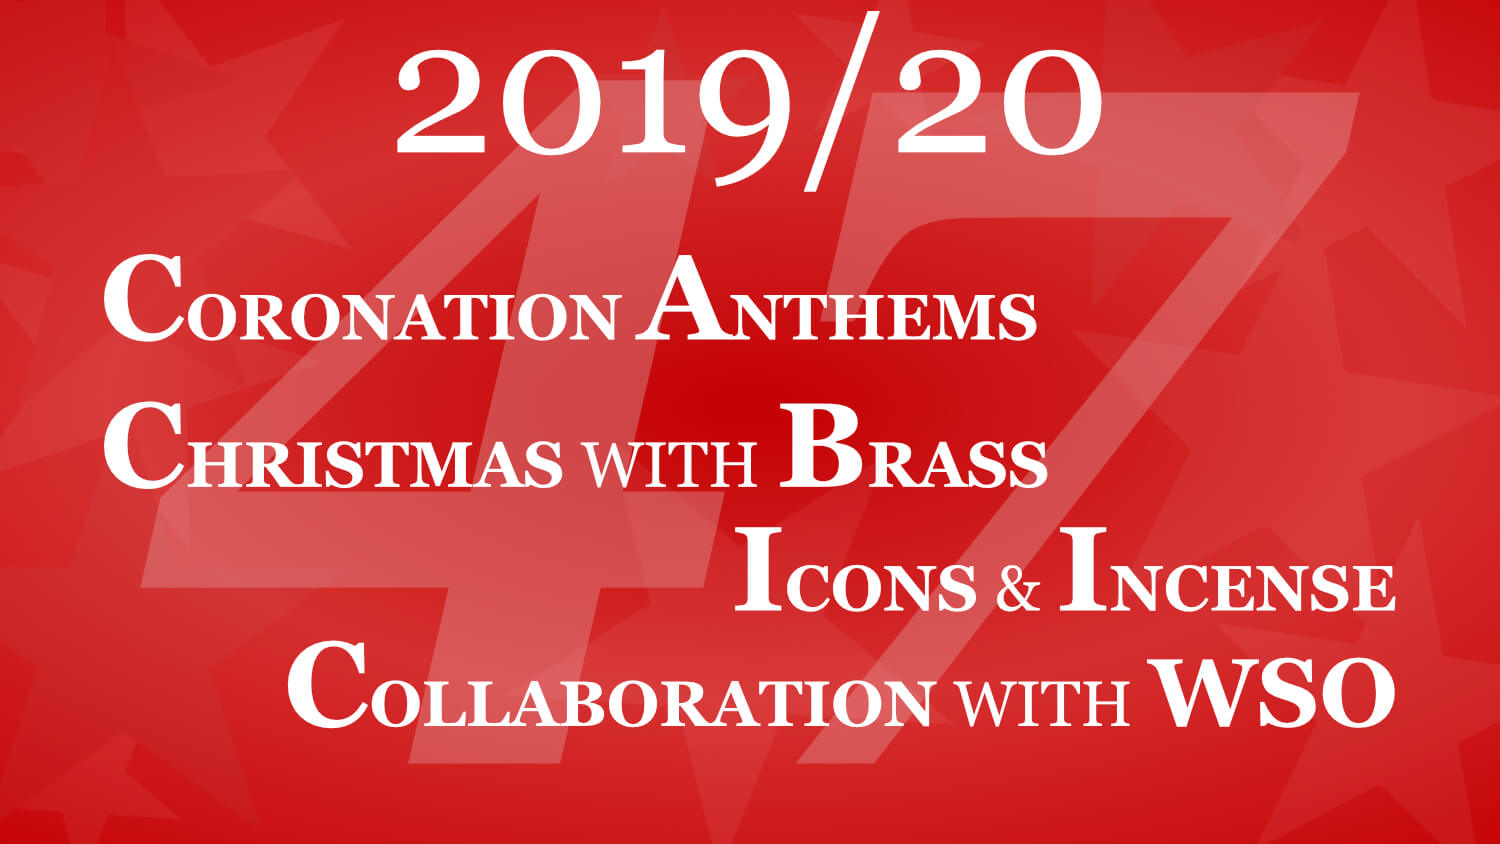 2019/20 list of Concerts: Coronation Anthems, Christmas with Brass, Icons & Incense, and Collaboration with the Winnipeg Symphony Orchestra